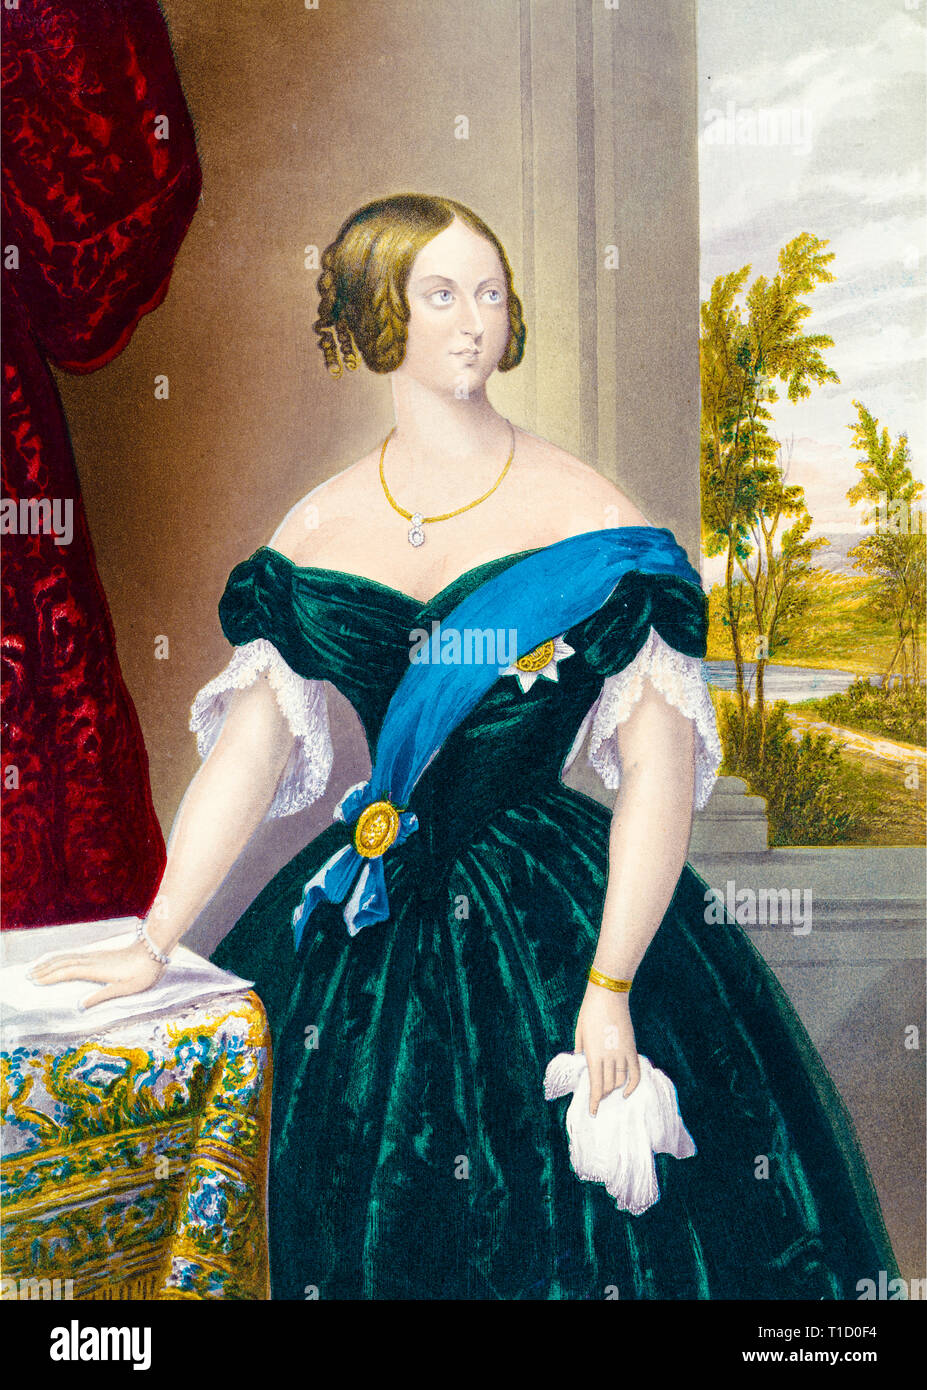 Queen Victoria portrait, colour woodcut print, hand on table, after George Baxter, c. 1860 - Stock Image